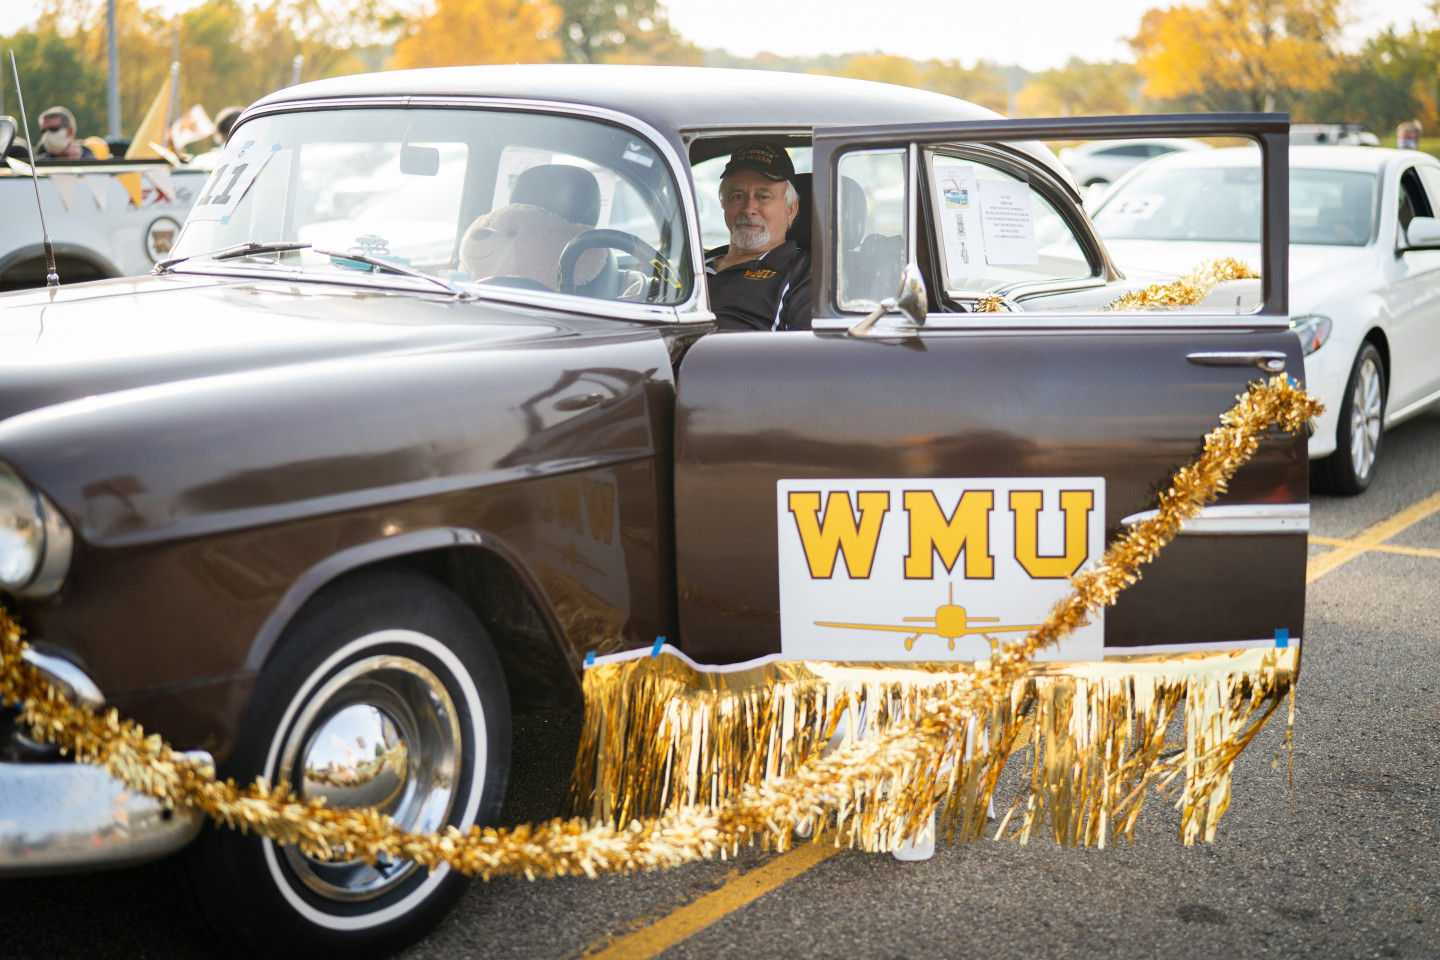 A person sits in a vintage car decorated with gold garland.